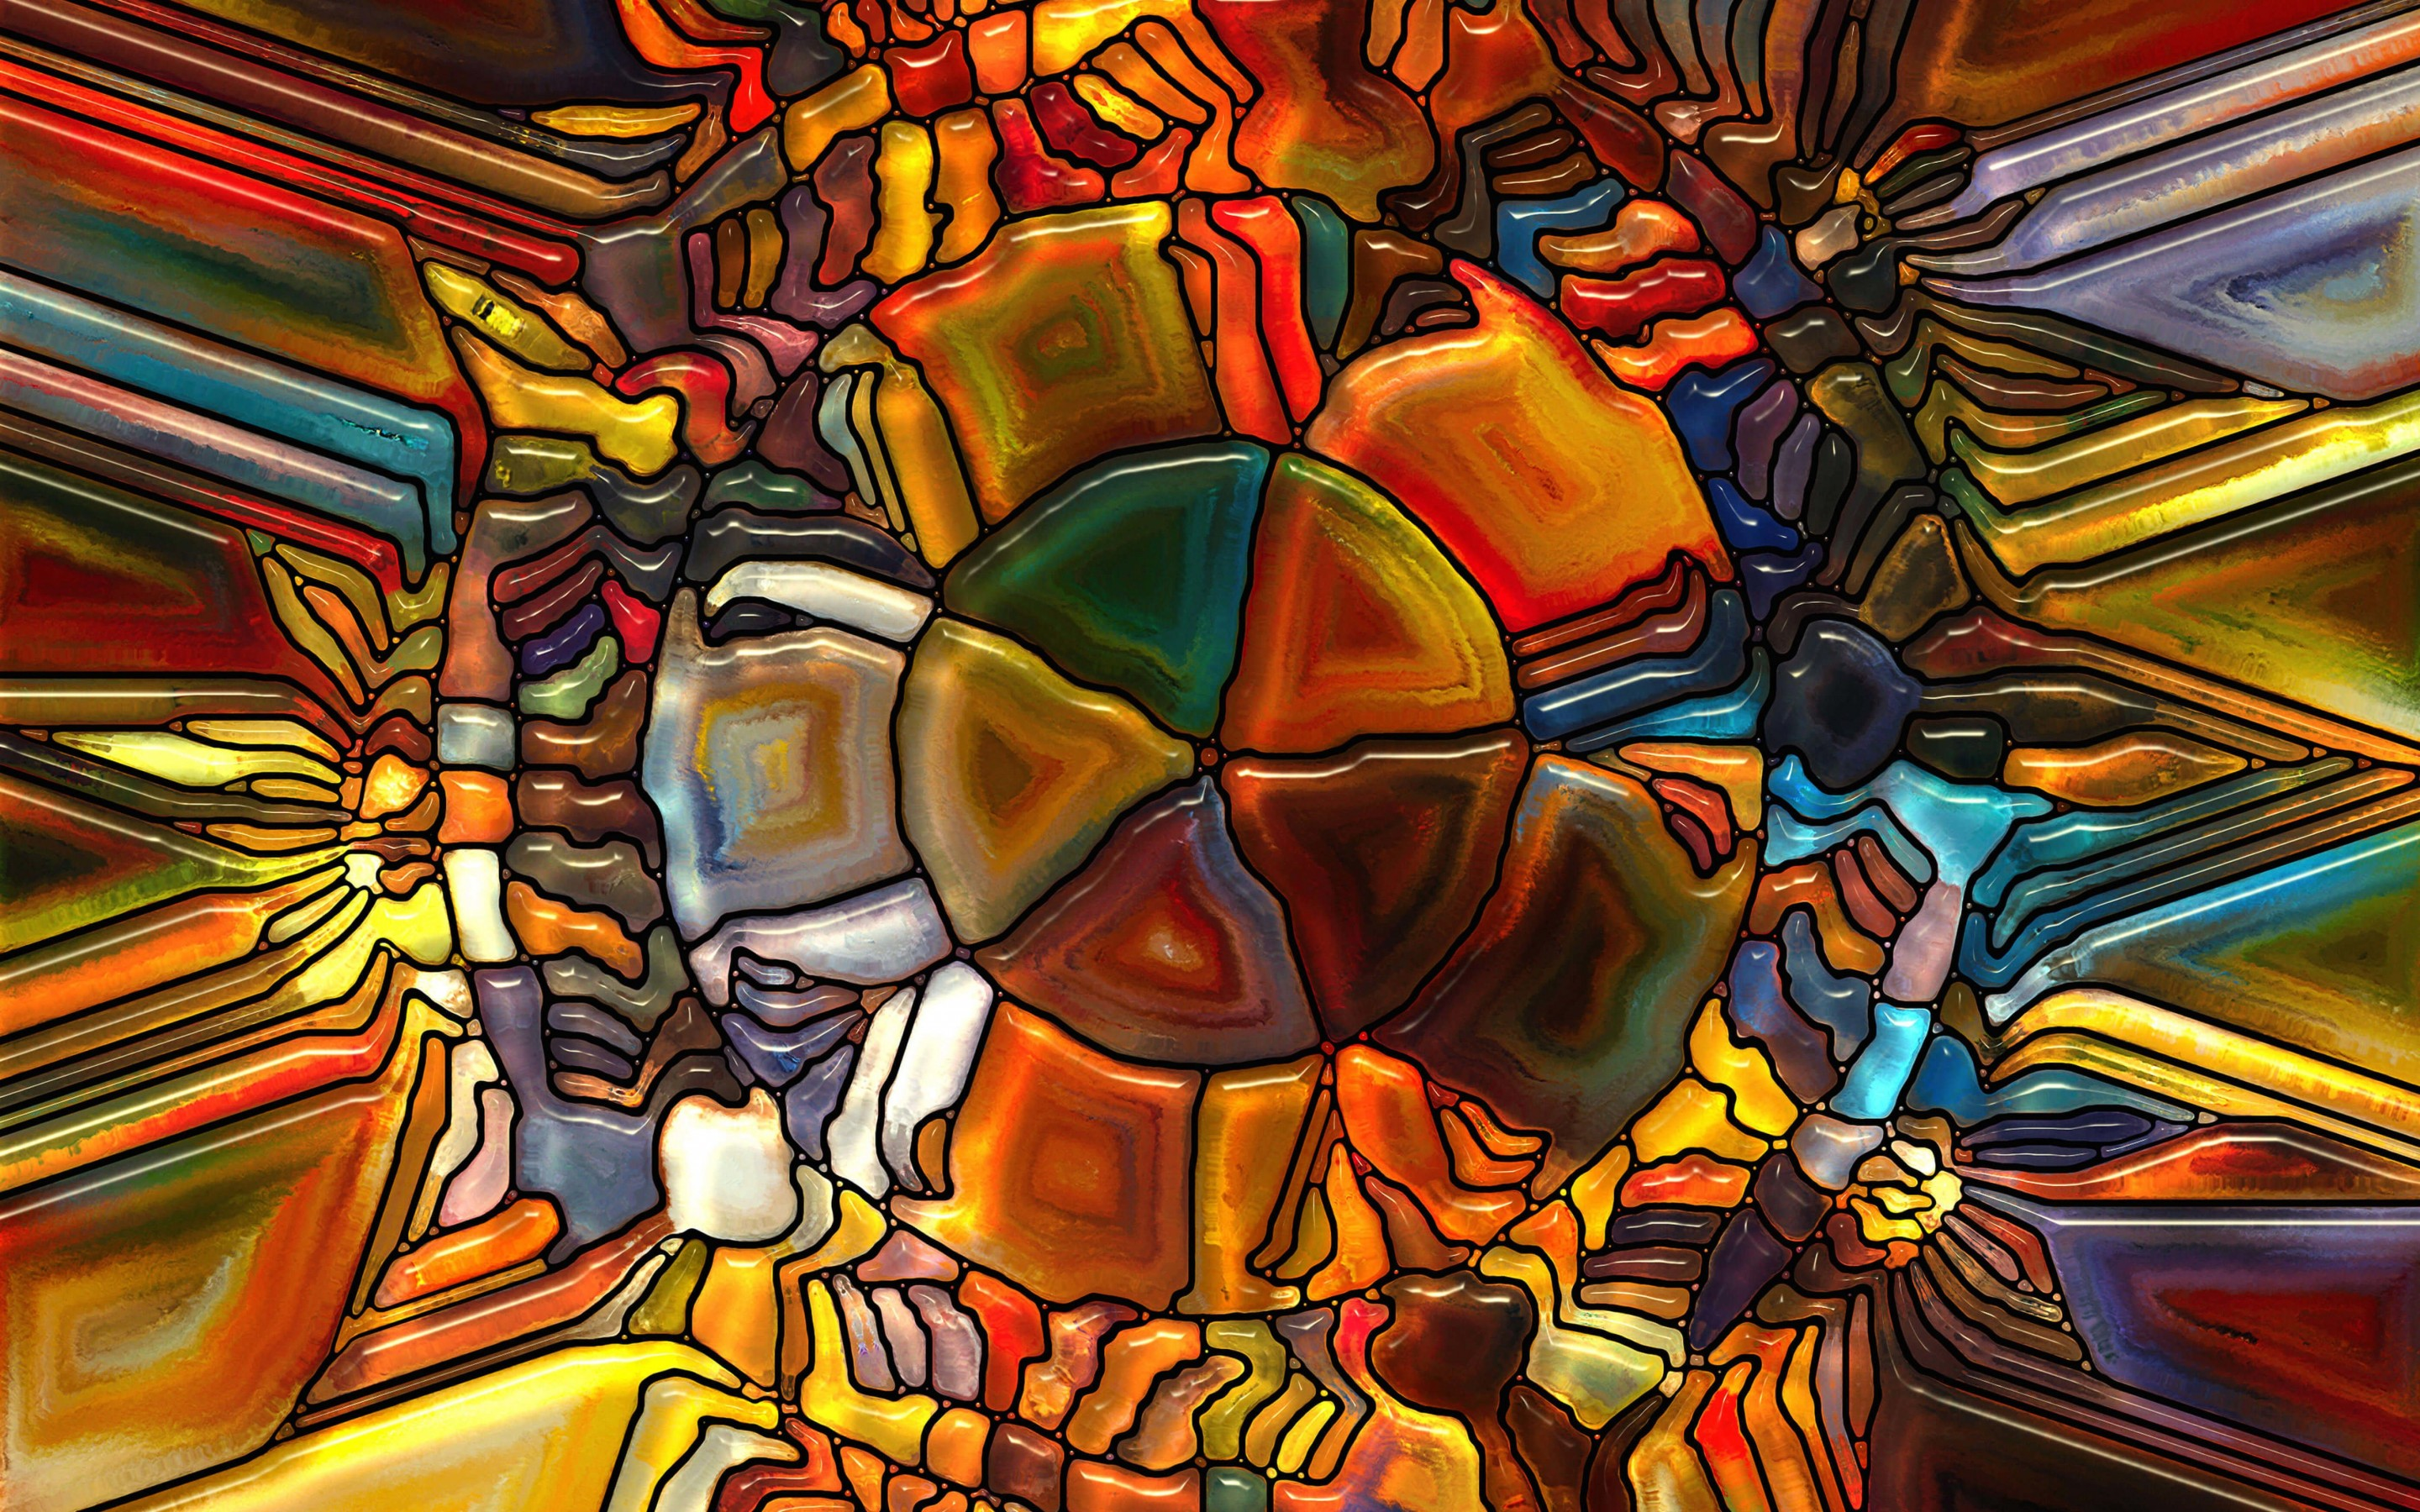 Psychedelic Stained Glass Wallpaper for Desktop 2880x1800